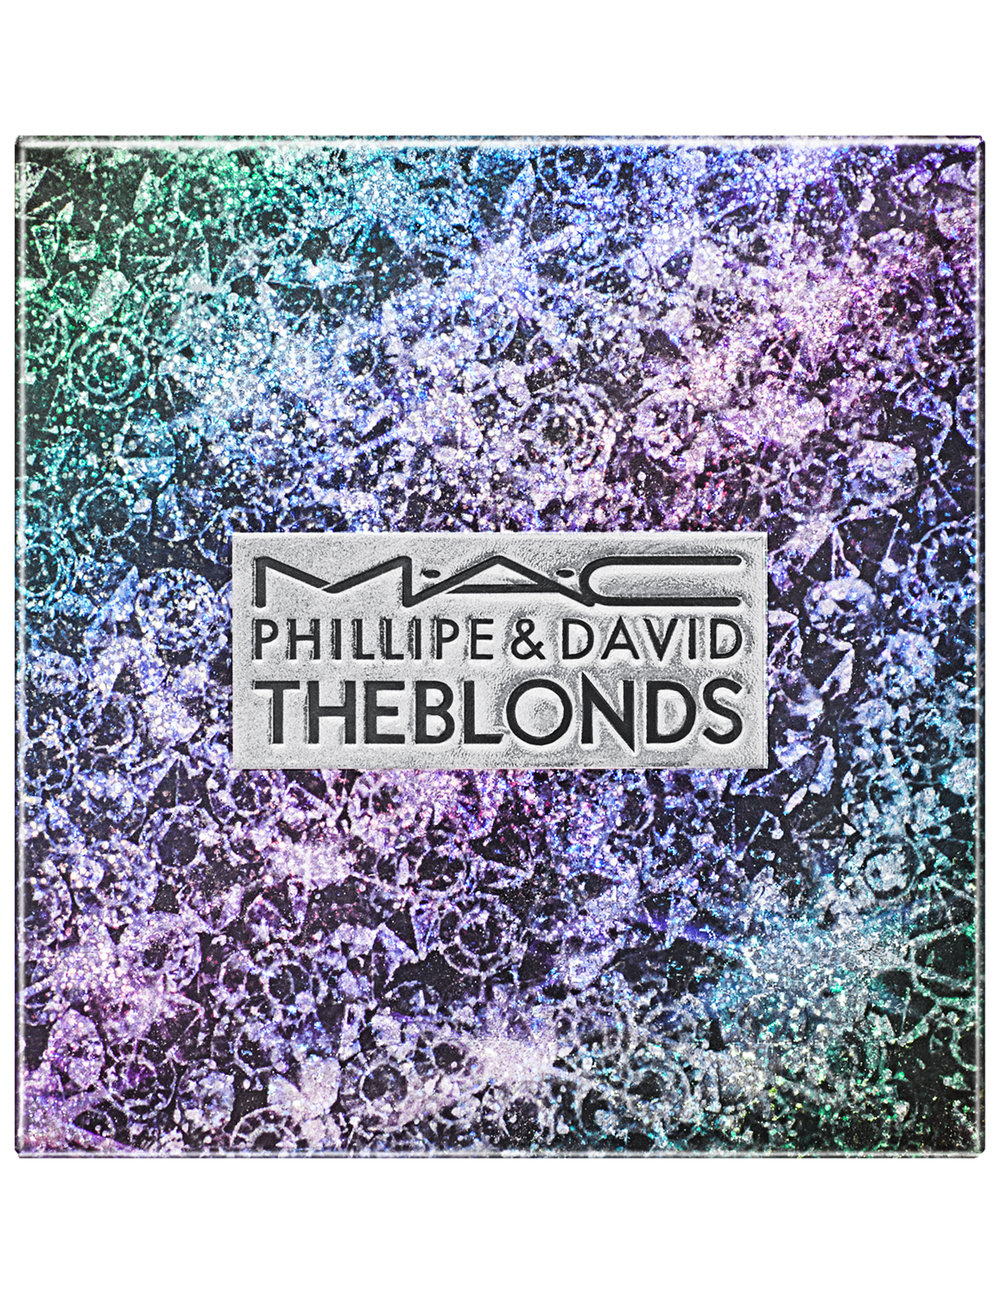 MAC_PhillipeAndDavidTheBlonds_PowderCarton_white_300dpi_1.jpg